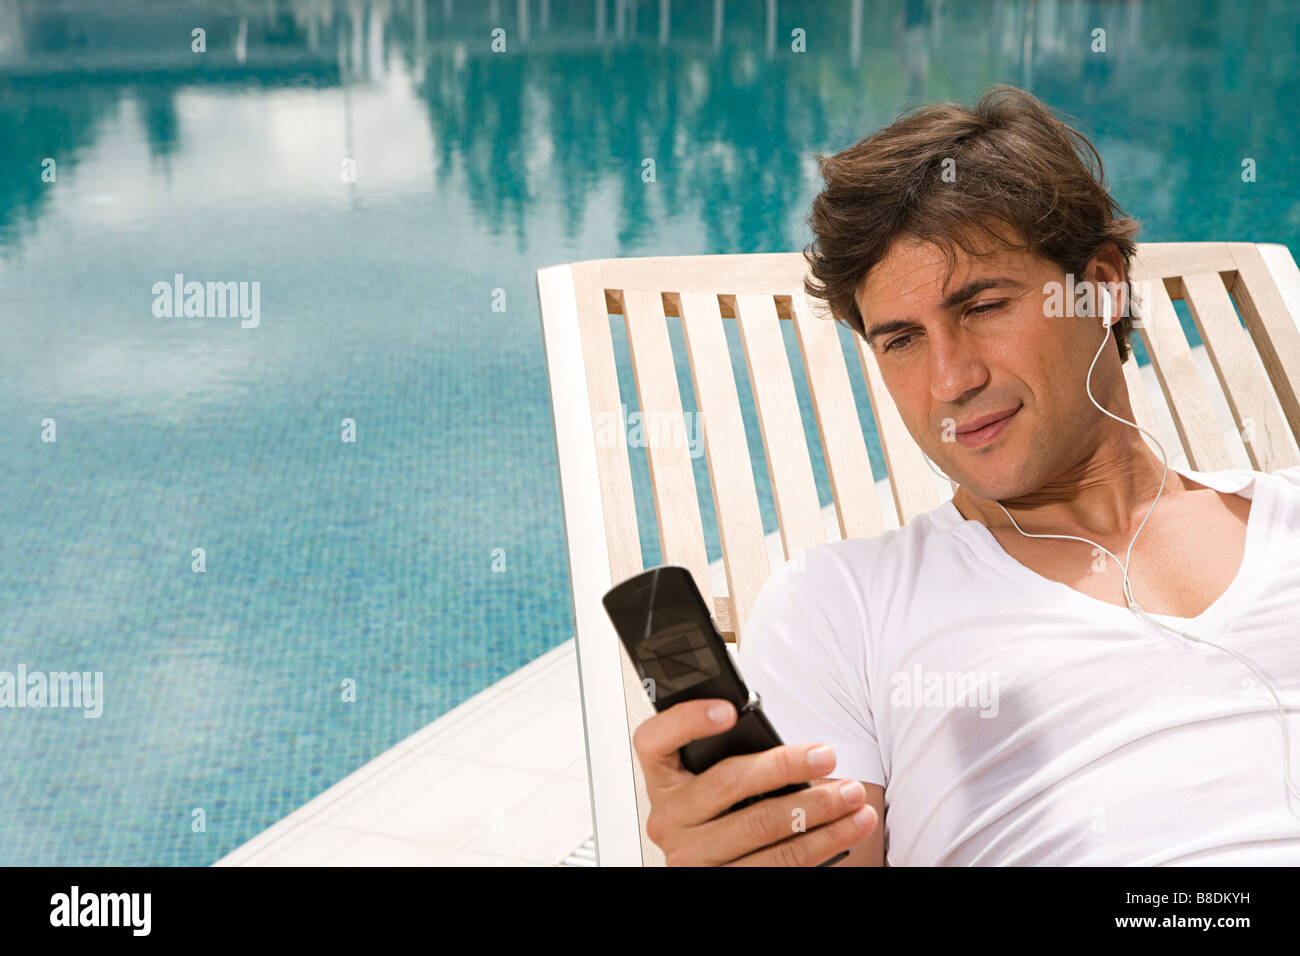 Man listening to music on cellular phone - Stock Image